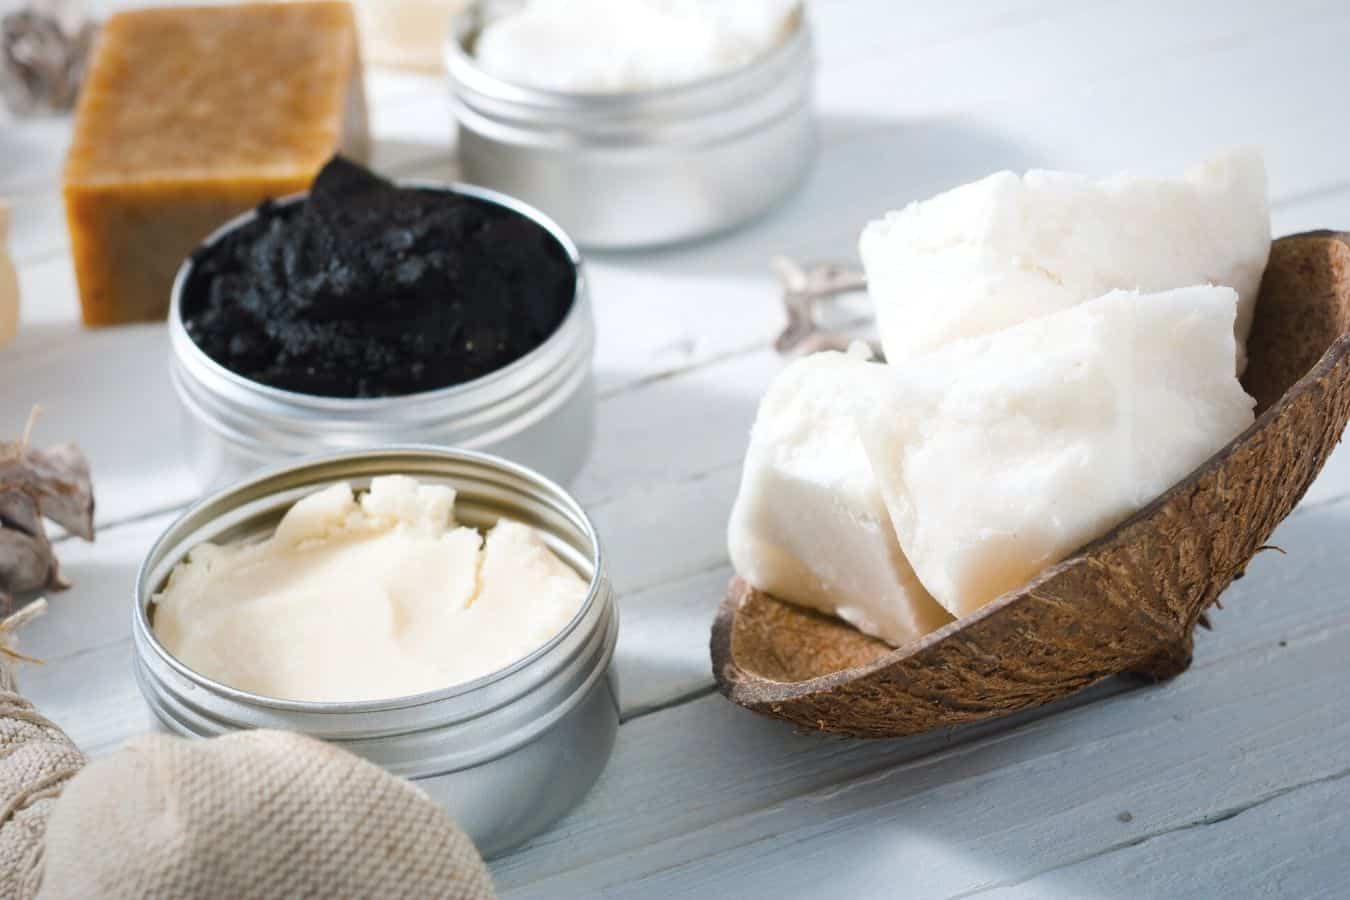 Does Shea Butter Help with Hair Loss